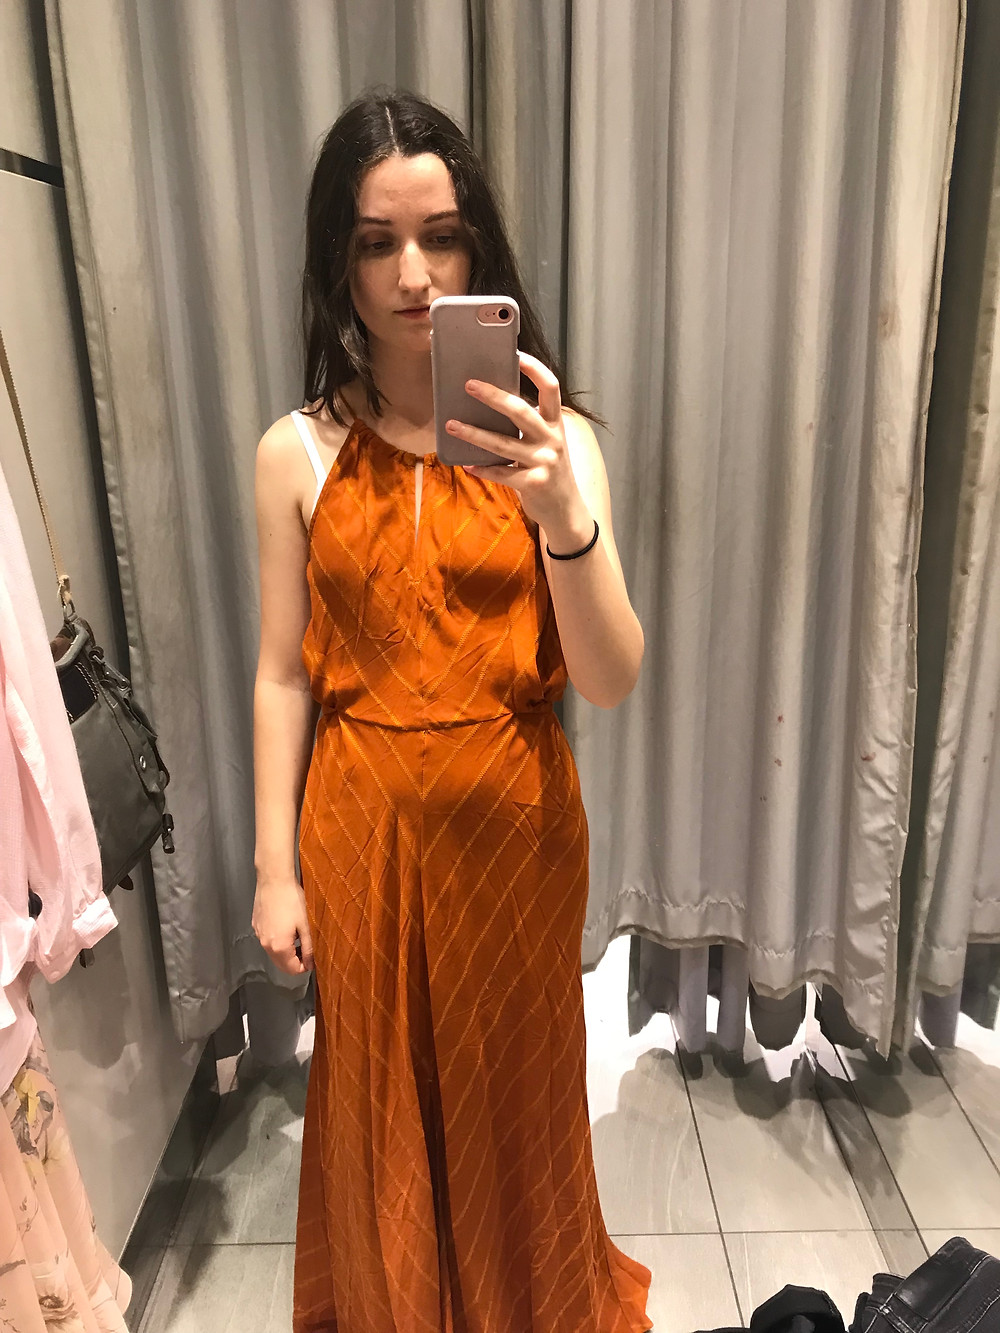 purposeful fits, h&m conscious collection review, h&m unflattering, fast fashion, extra fabric, misplaced bust, poorly constructed dress, h&m greenwashing, h&m sustainable, greenwashing